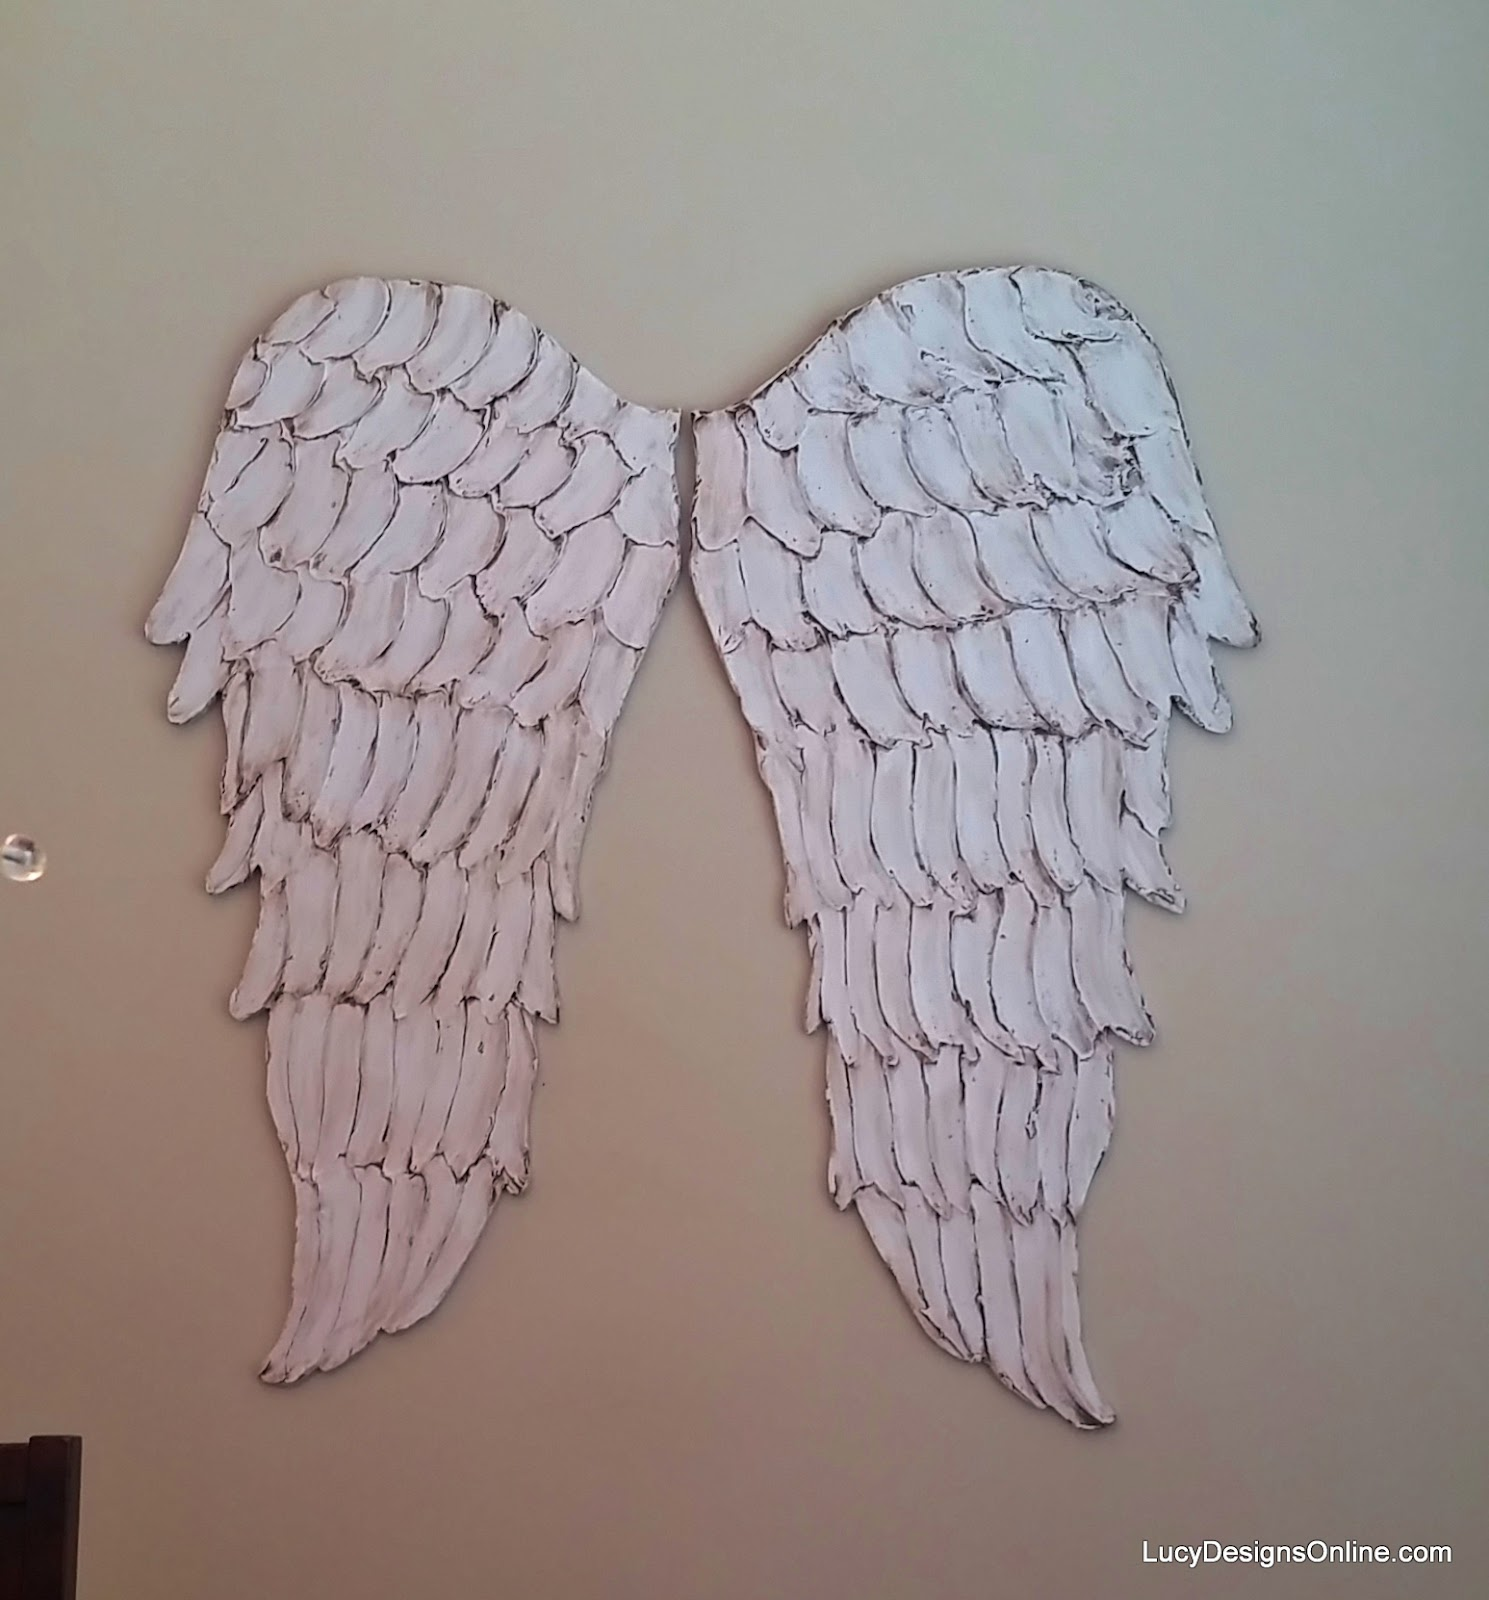 Wooden Angel Wings Wall Decor wood angel wings wall art, large carved look wooden angel wings